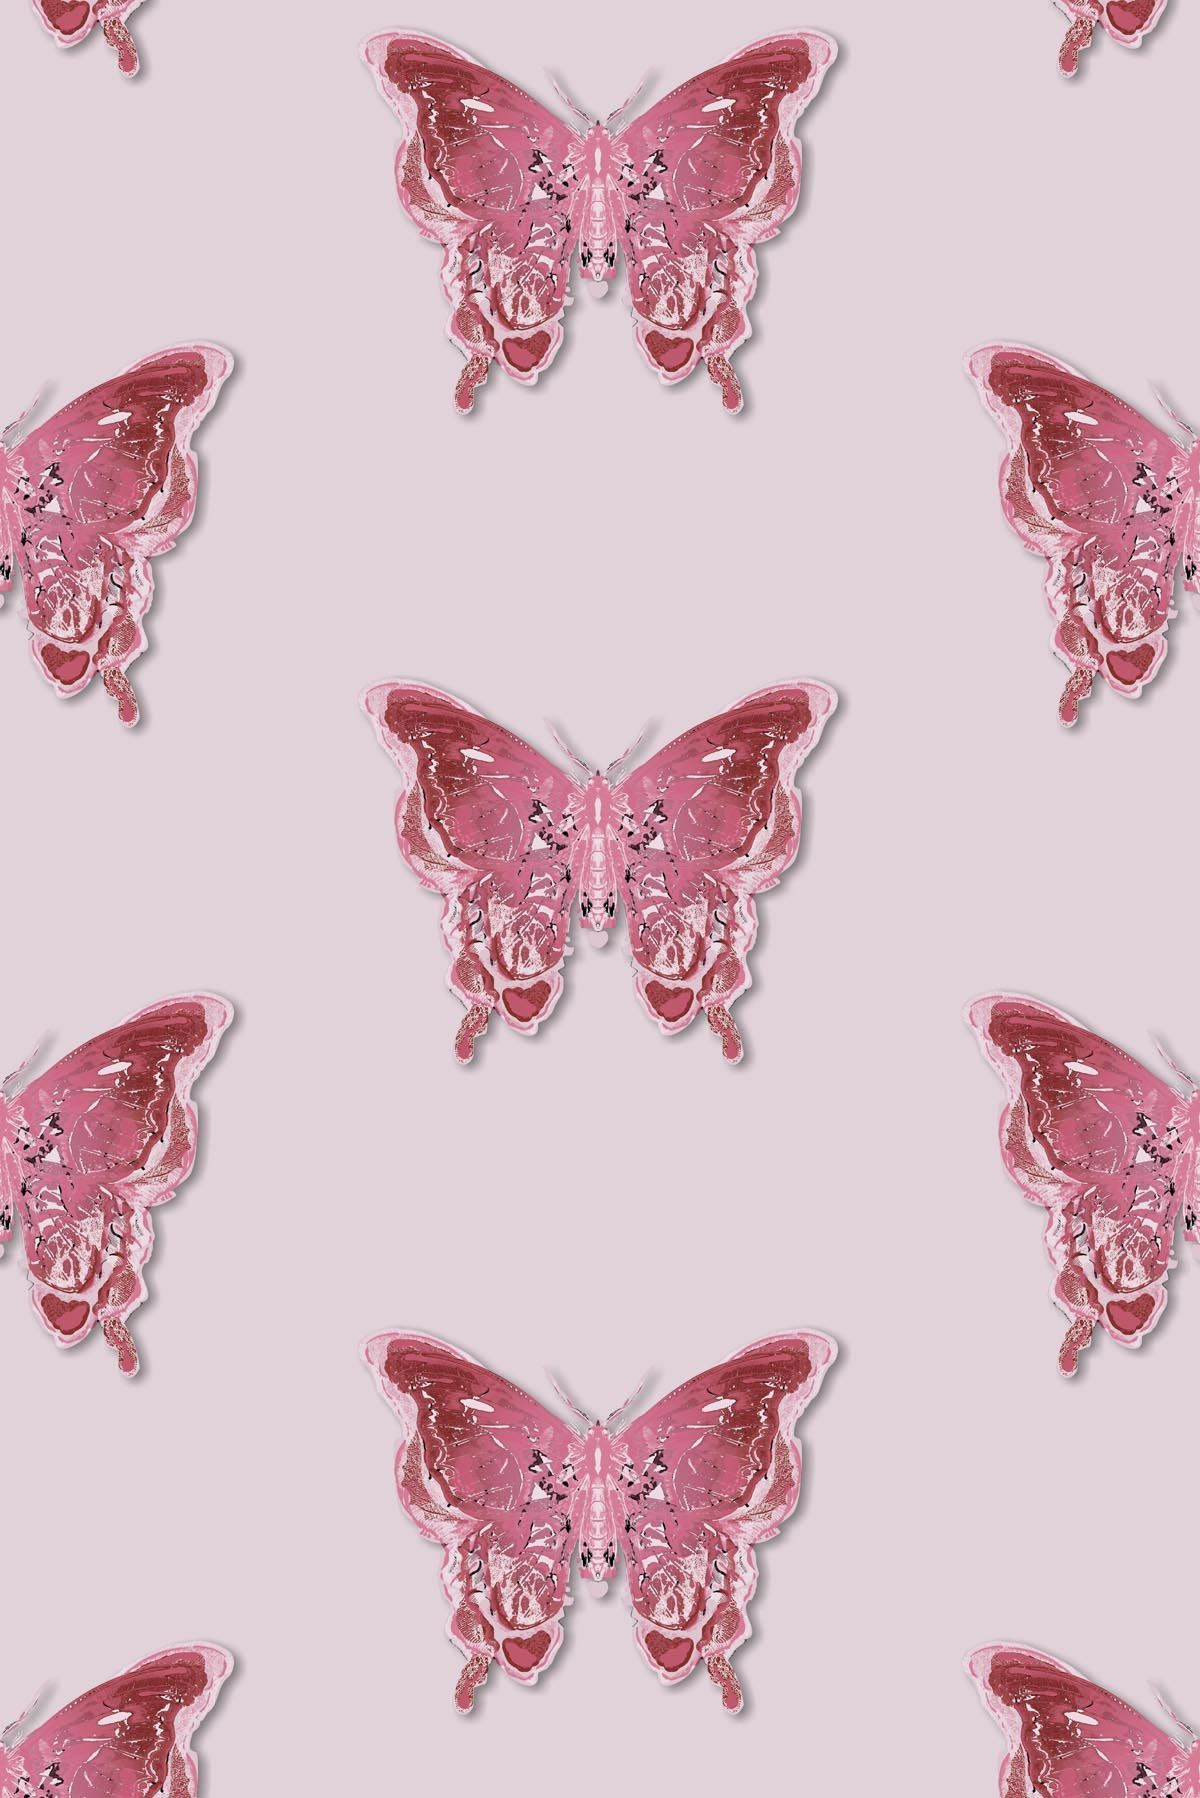 1200x1798 Timorous Beasties Wallcoverings - Butterfly wallpaper